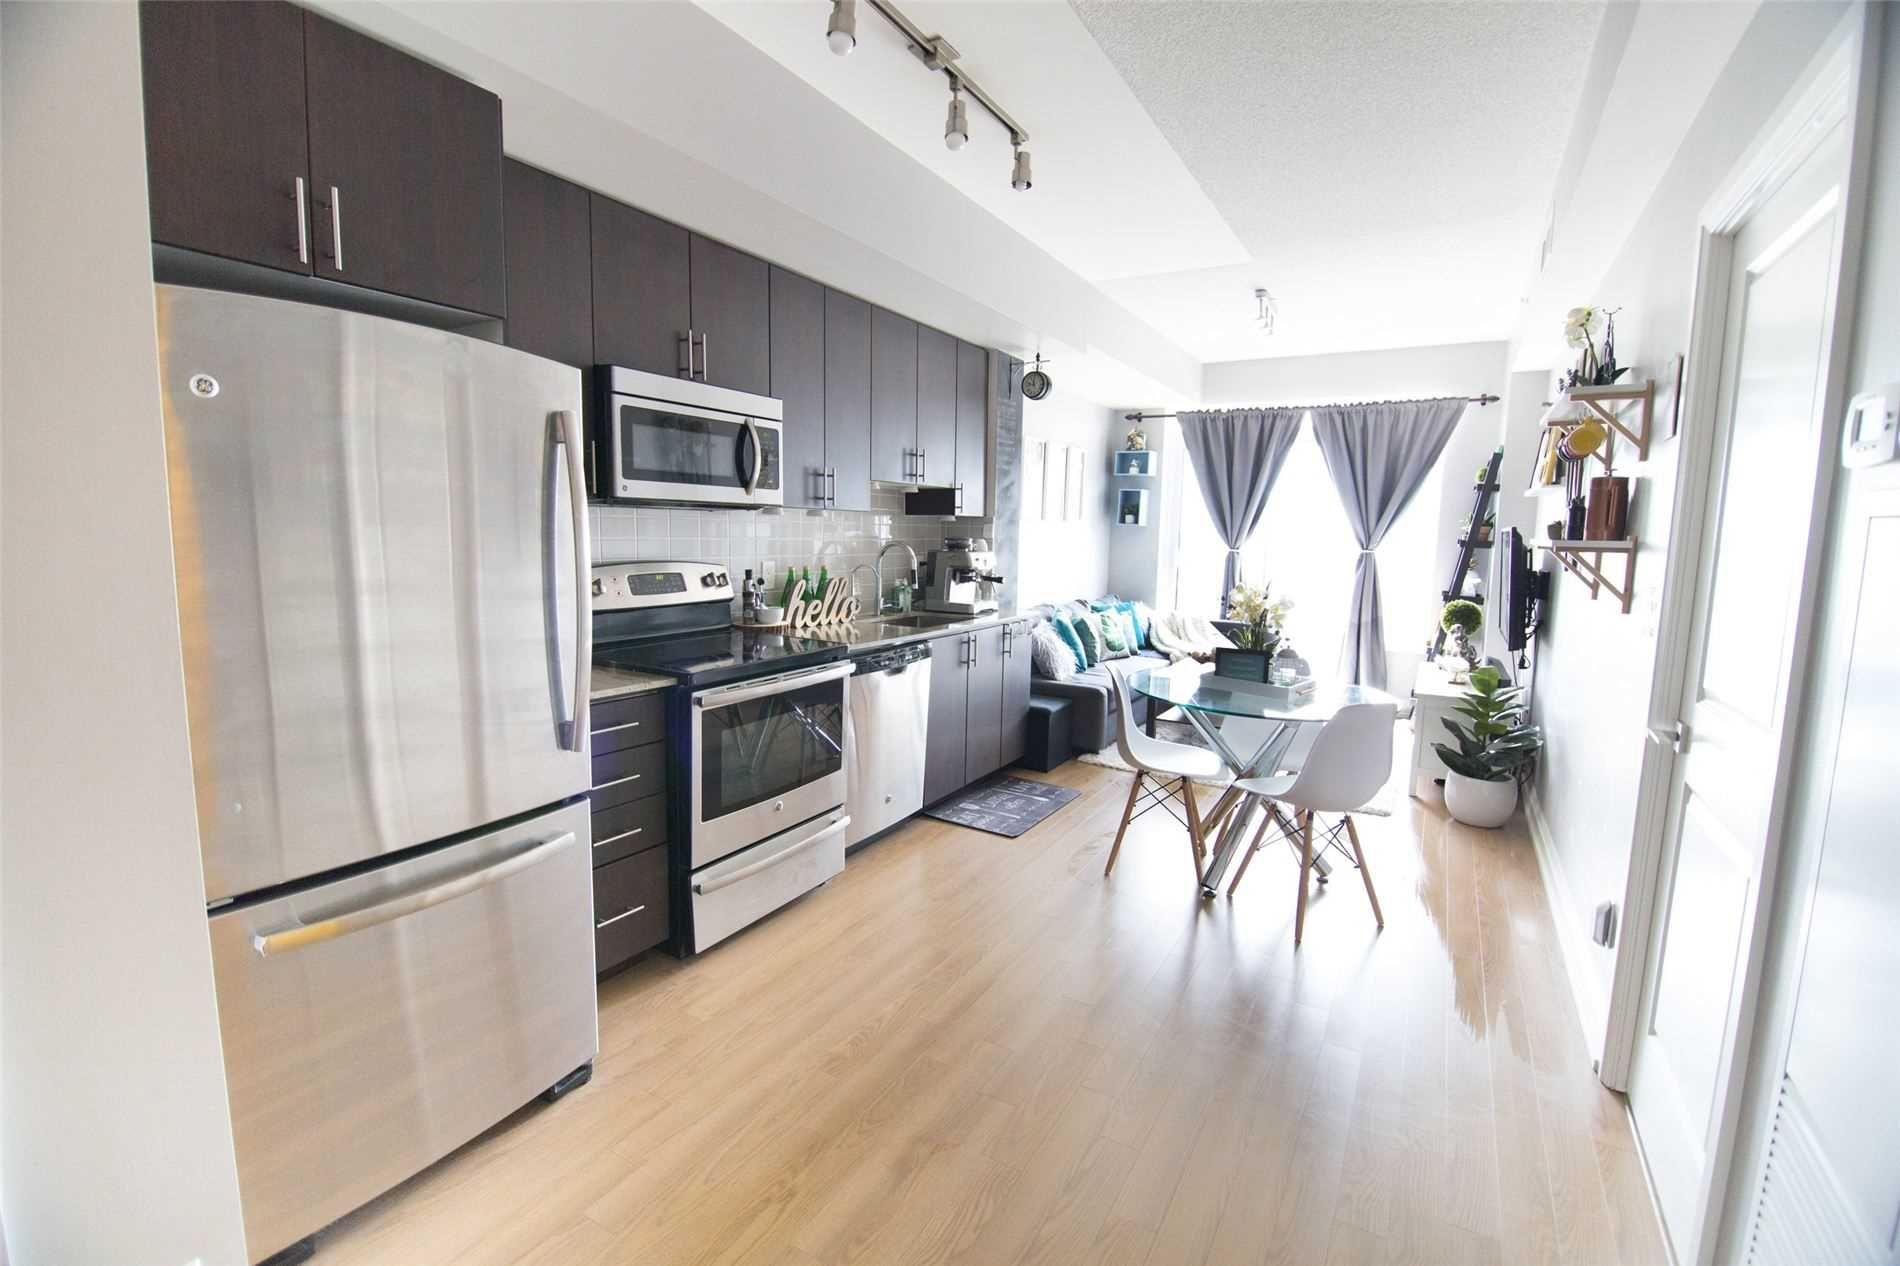 7171 Yonge St, unit 412 for sale in Toronto - image #1